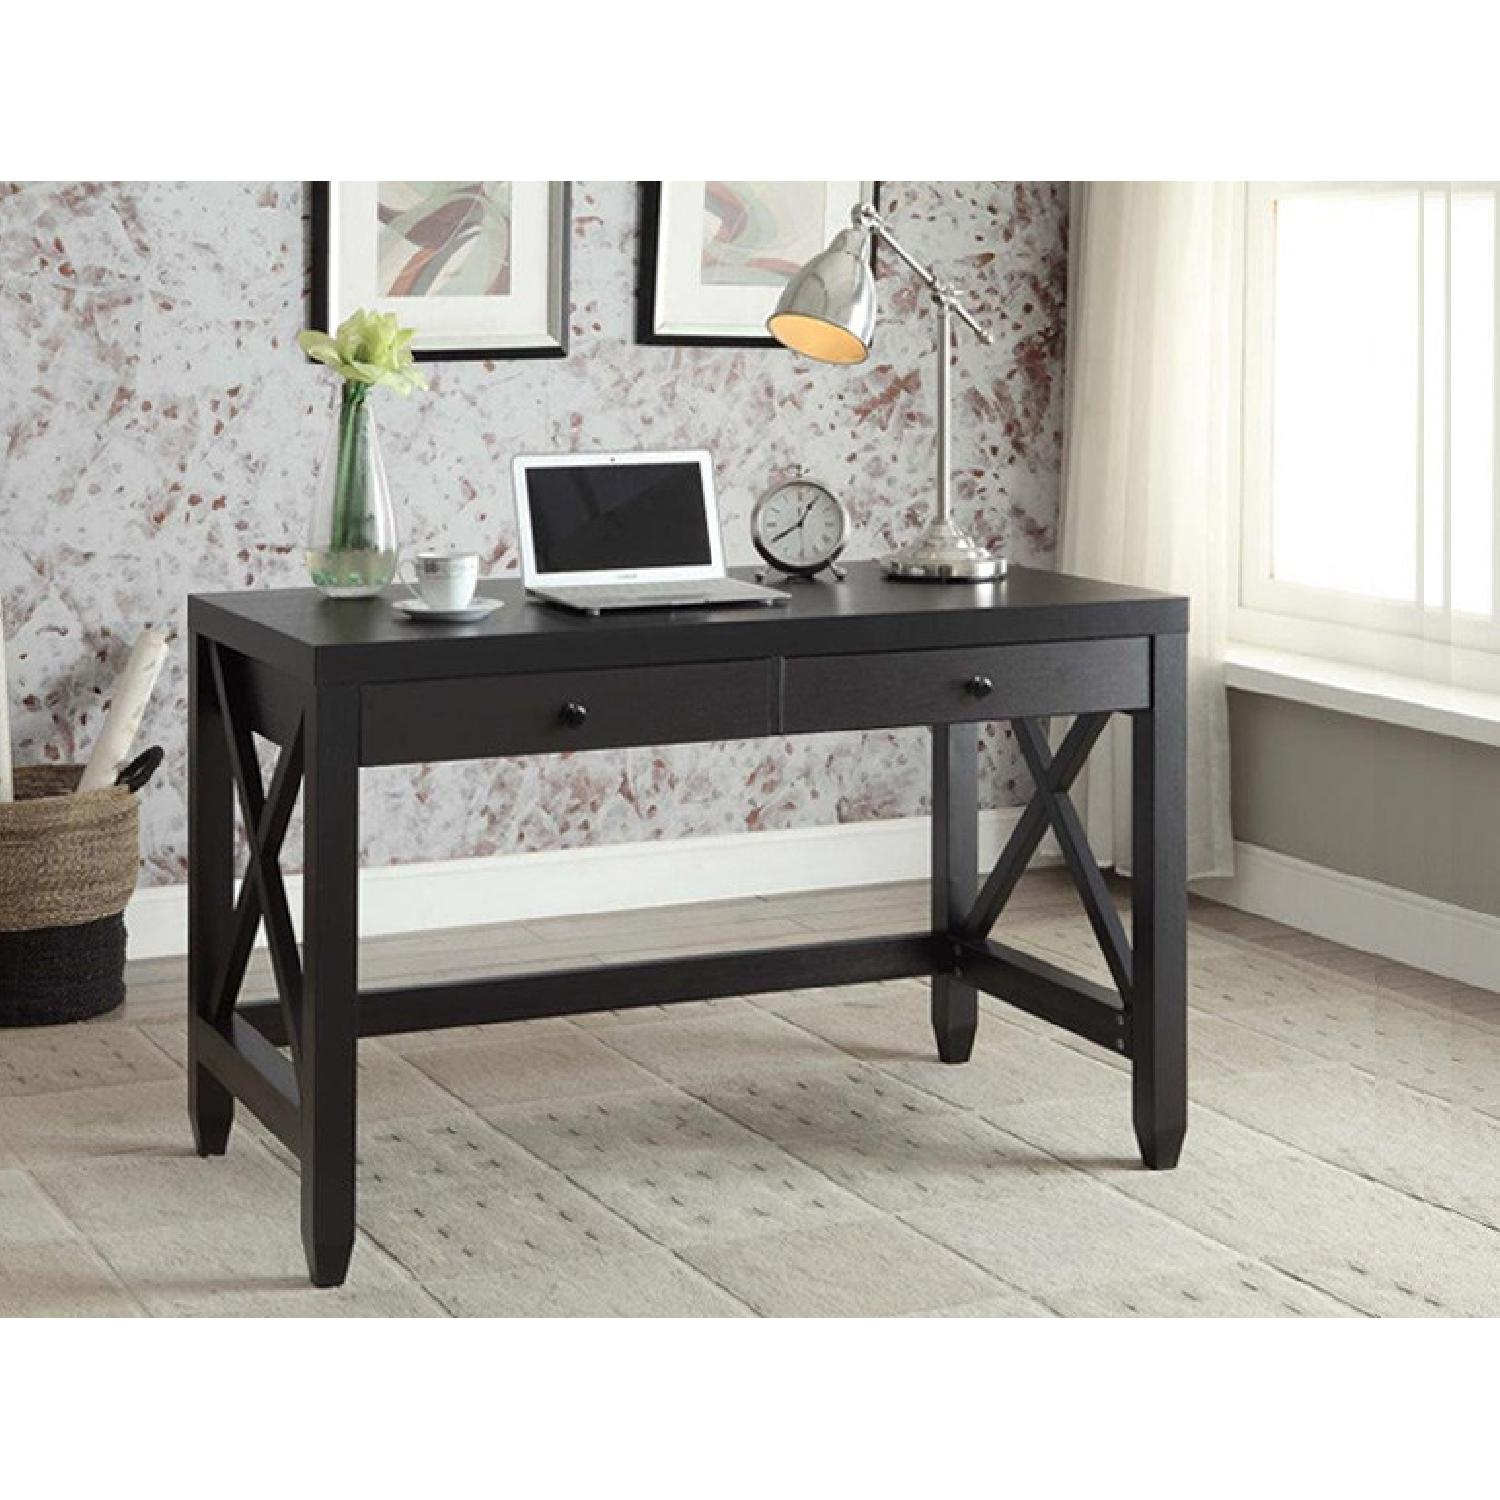 Cappuccino Writing Desk w/ X Detail - image-3